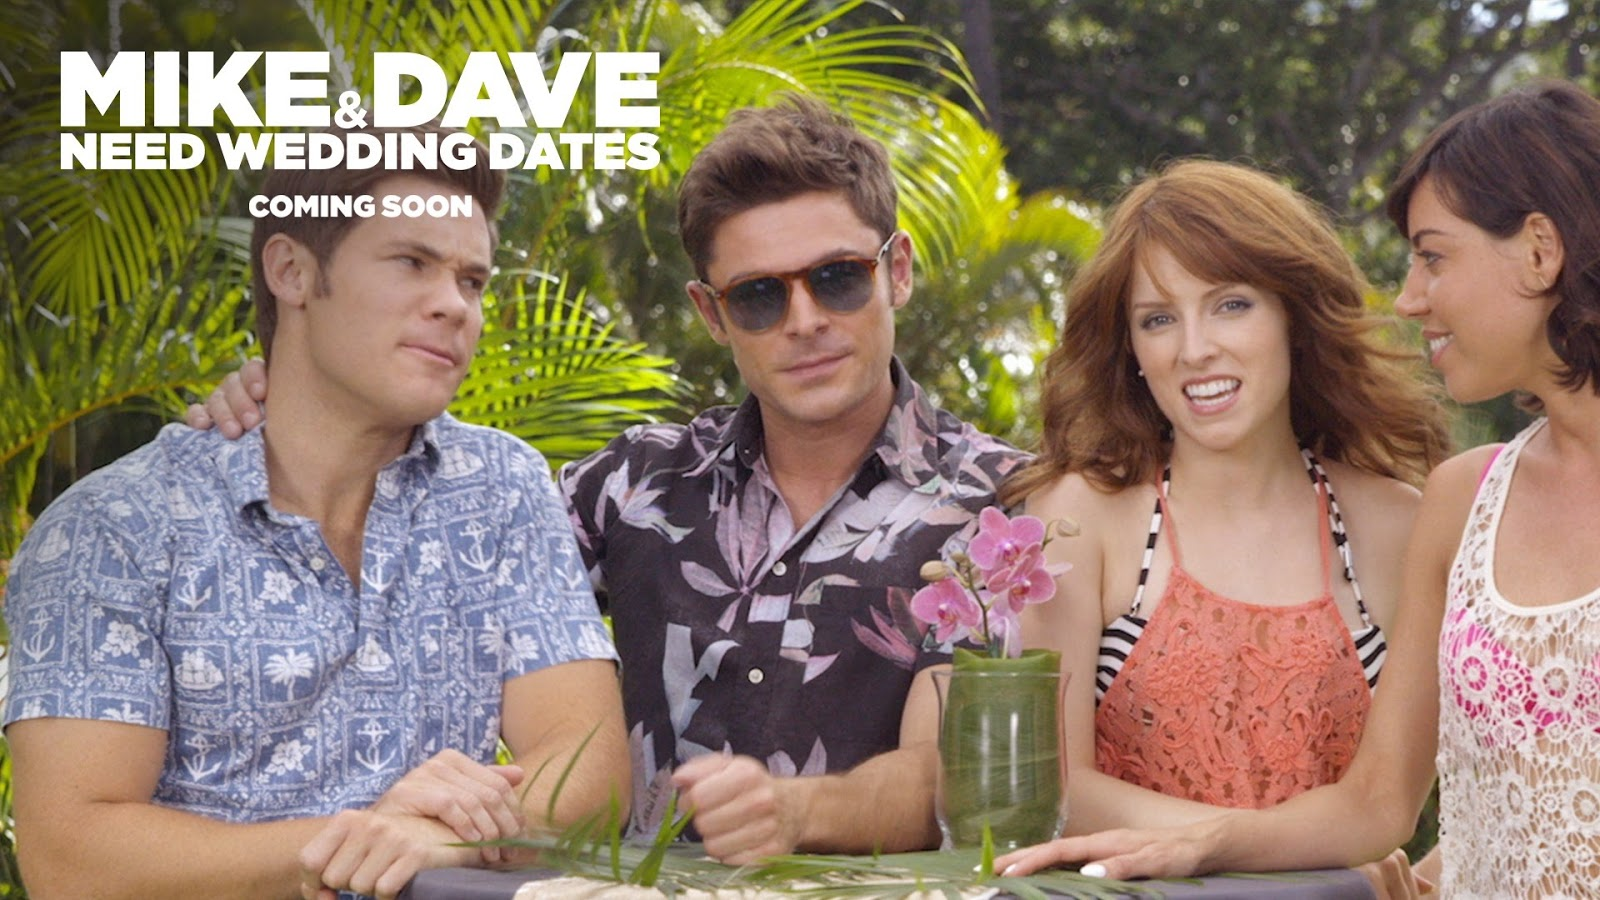 Mike And Dave Need Wedding Dates Online.Mike Dave Need Wedding Dates Movie Review